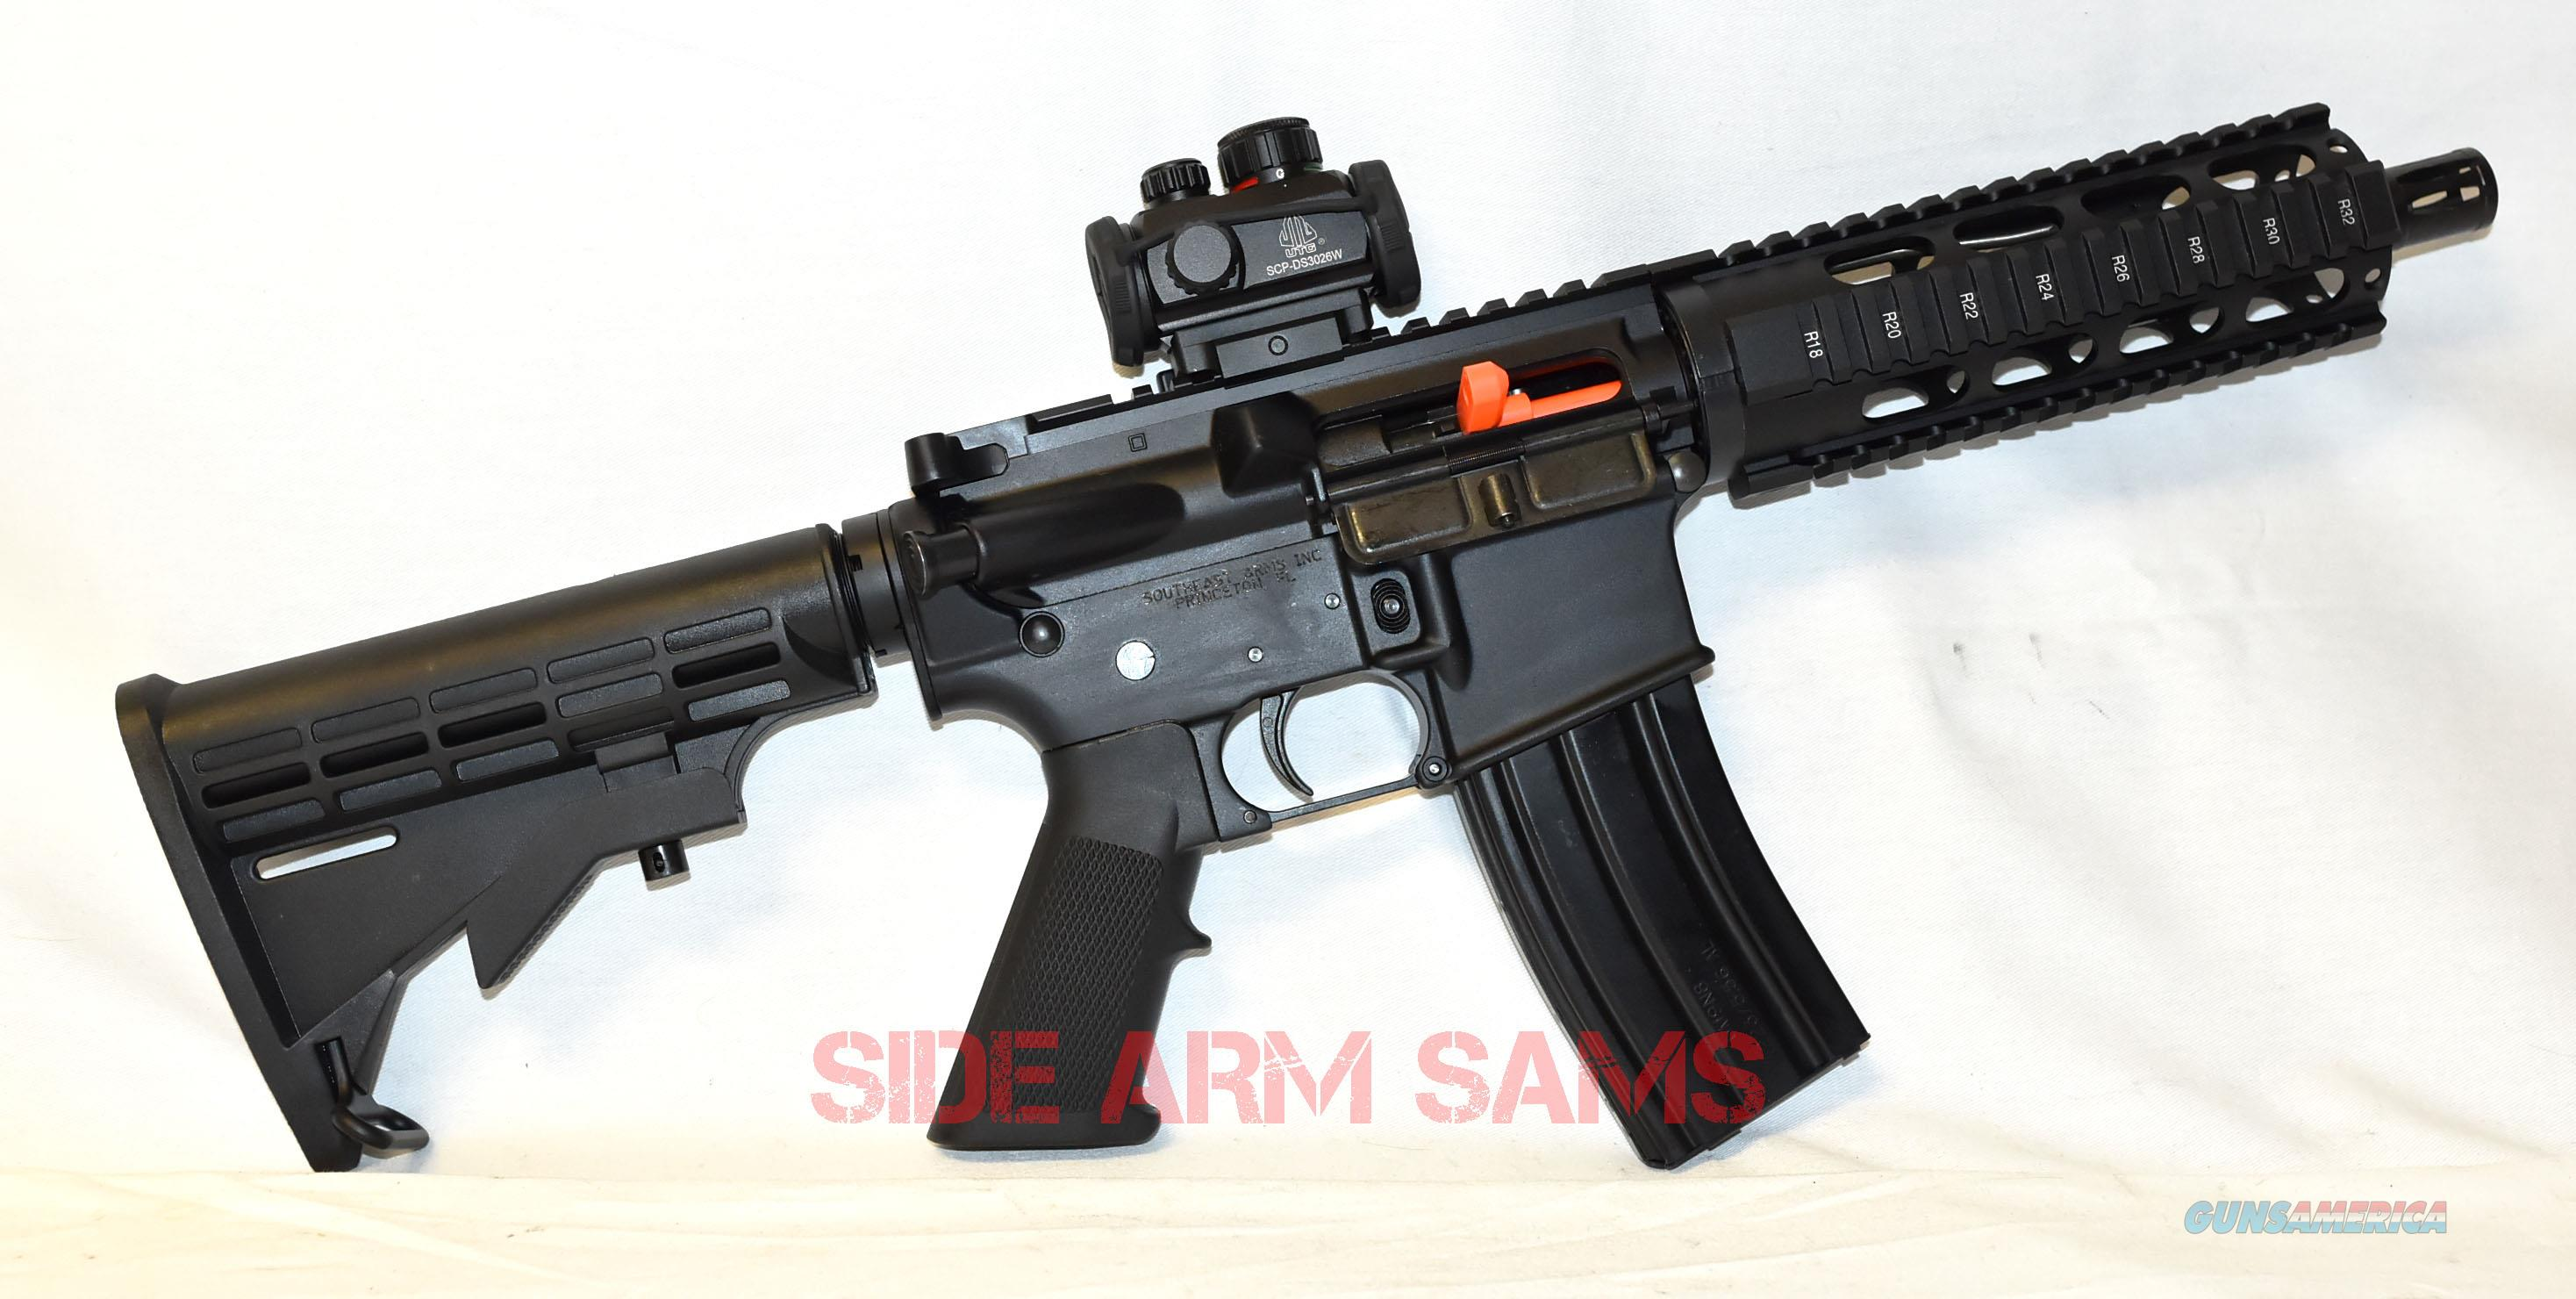 "NIB AM-15 -7.5"" Barrel, Free-Float HG,5.56 SBR,Optics,Case,Free Ship  Guns > Rifles > Class 3 Rifles > Class 3 Subguns"